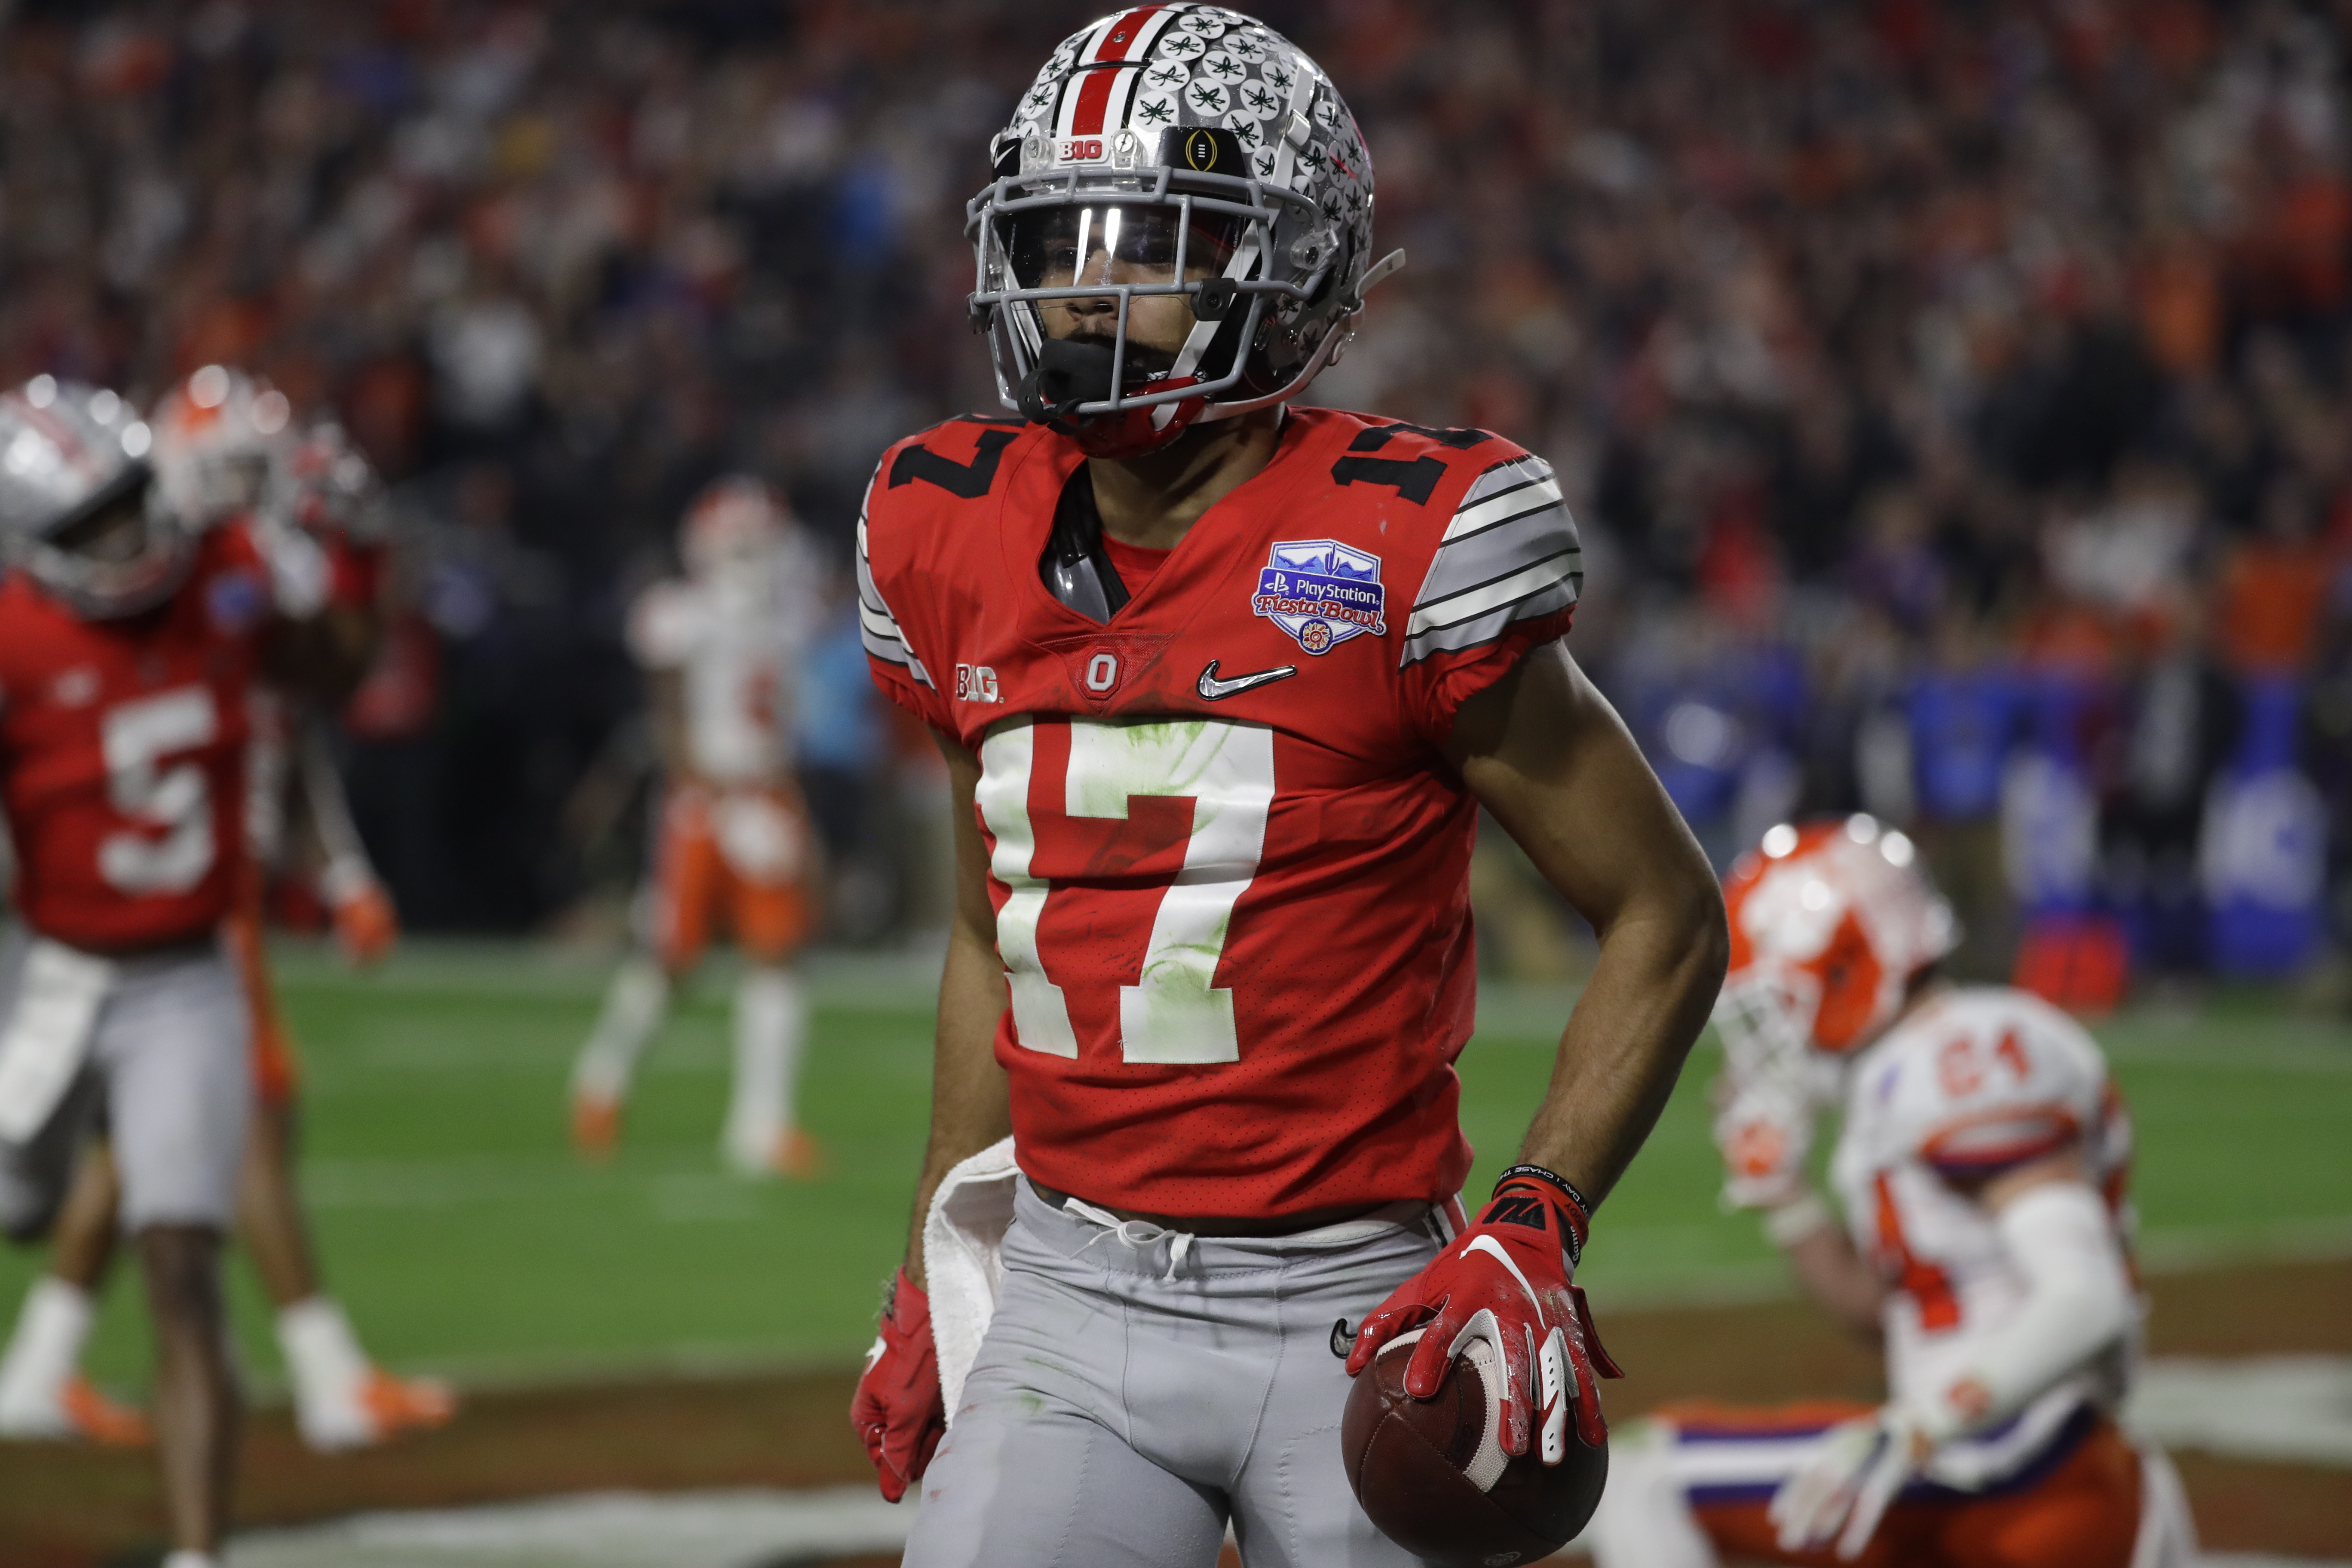 What S More Likely For Ohio State Football Chris Olave Wins The Biletnikoff Award Vs Shaun Wade Wins The Thorpe Award Cleveland Com